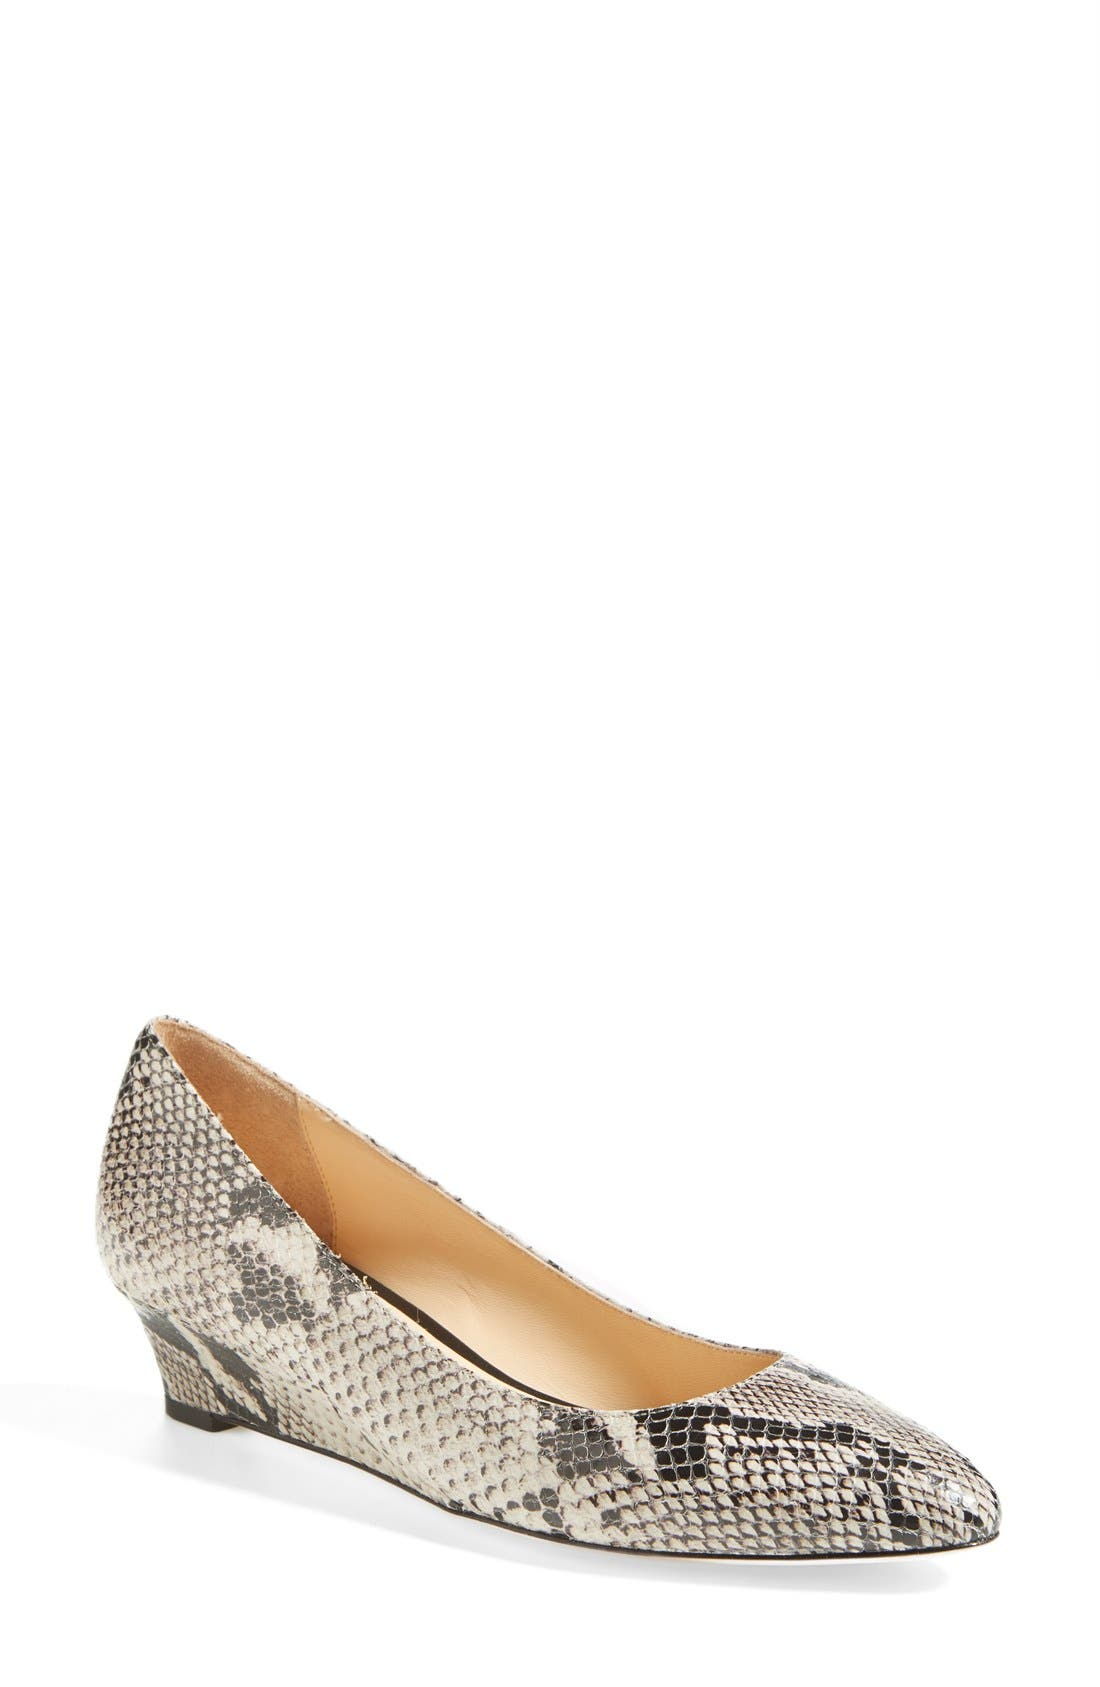 Main Image - Cole Haan 'Bethany' Wedge Pump (Women)